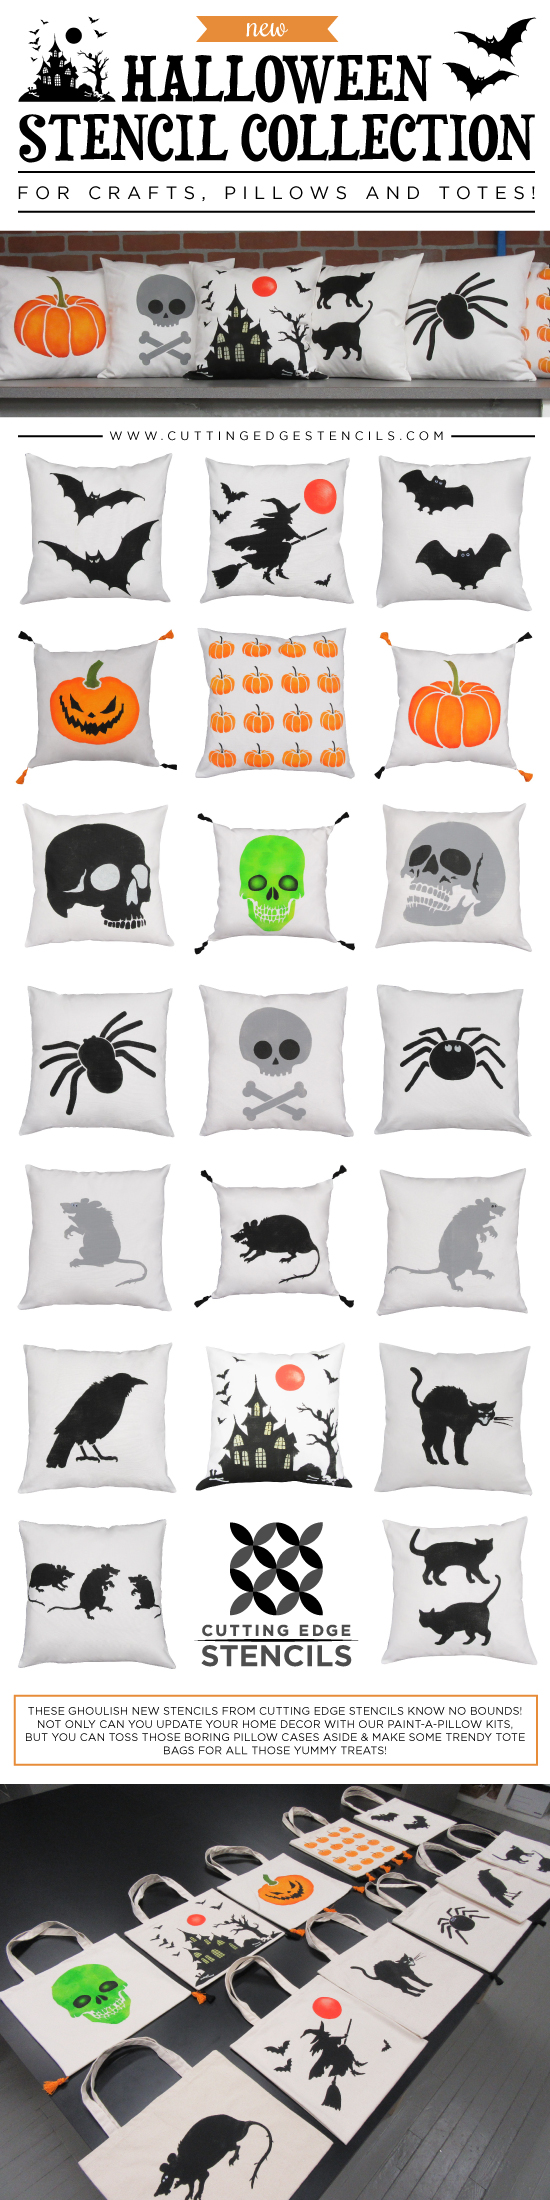 The Halloween Stencil Collection from Cutting Edge Stencils comes in craft and pillow/tote bag sizes. http://www.cuttingedgestencils.com/christmas-stencils-valentine-halloween.html